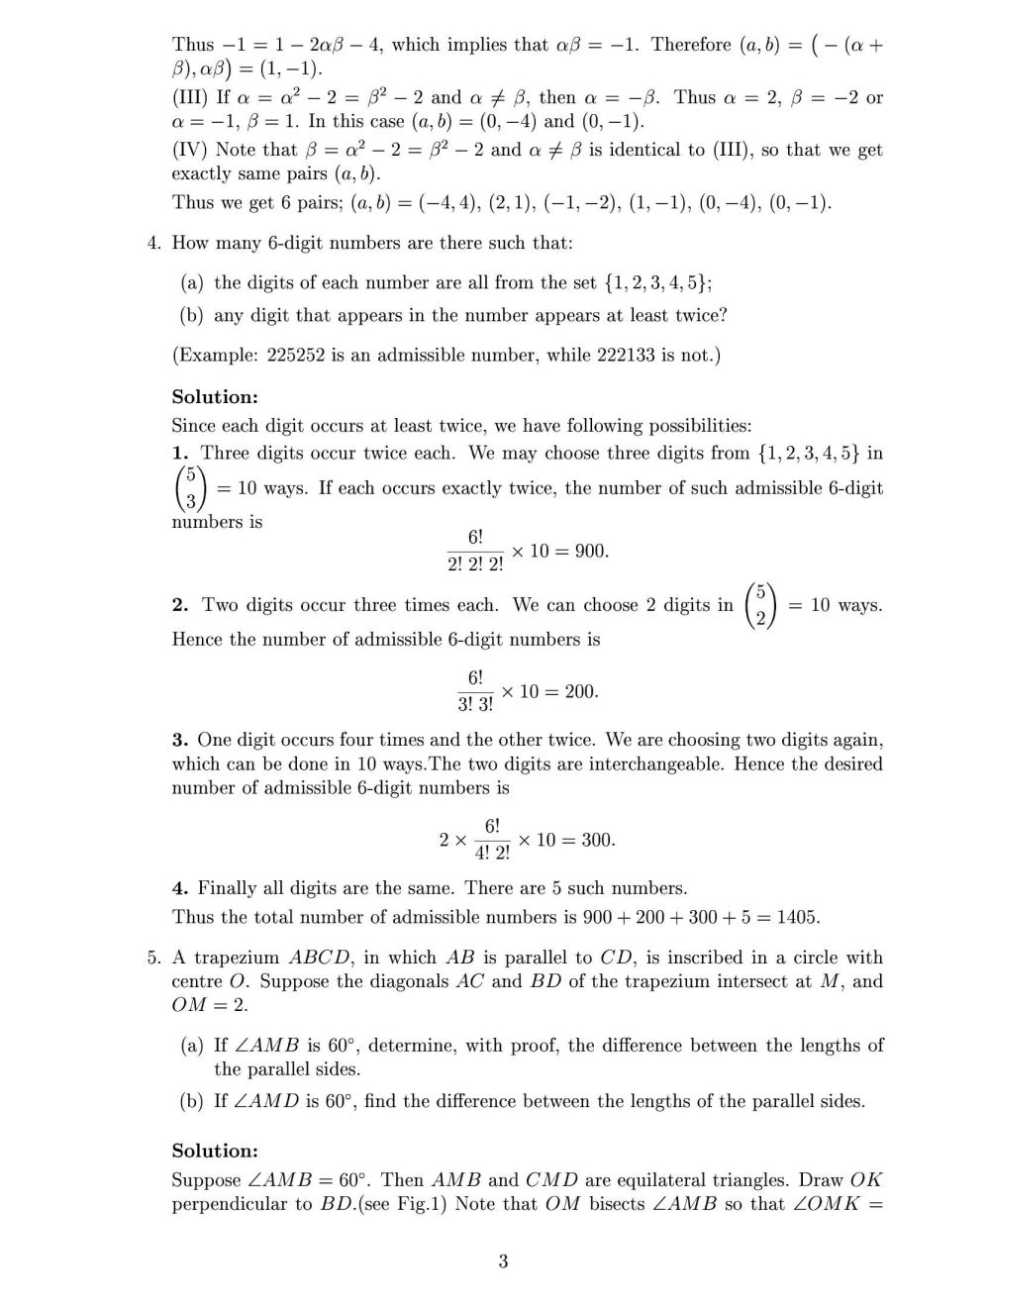 Maths Olympiad Previous year Questions - 2018-2019 StudyChaCha